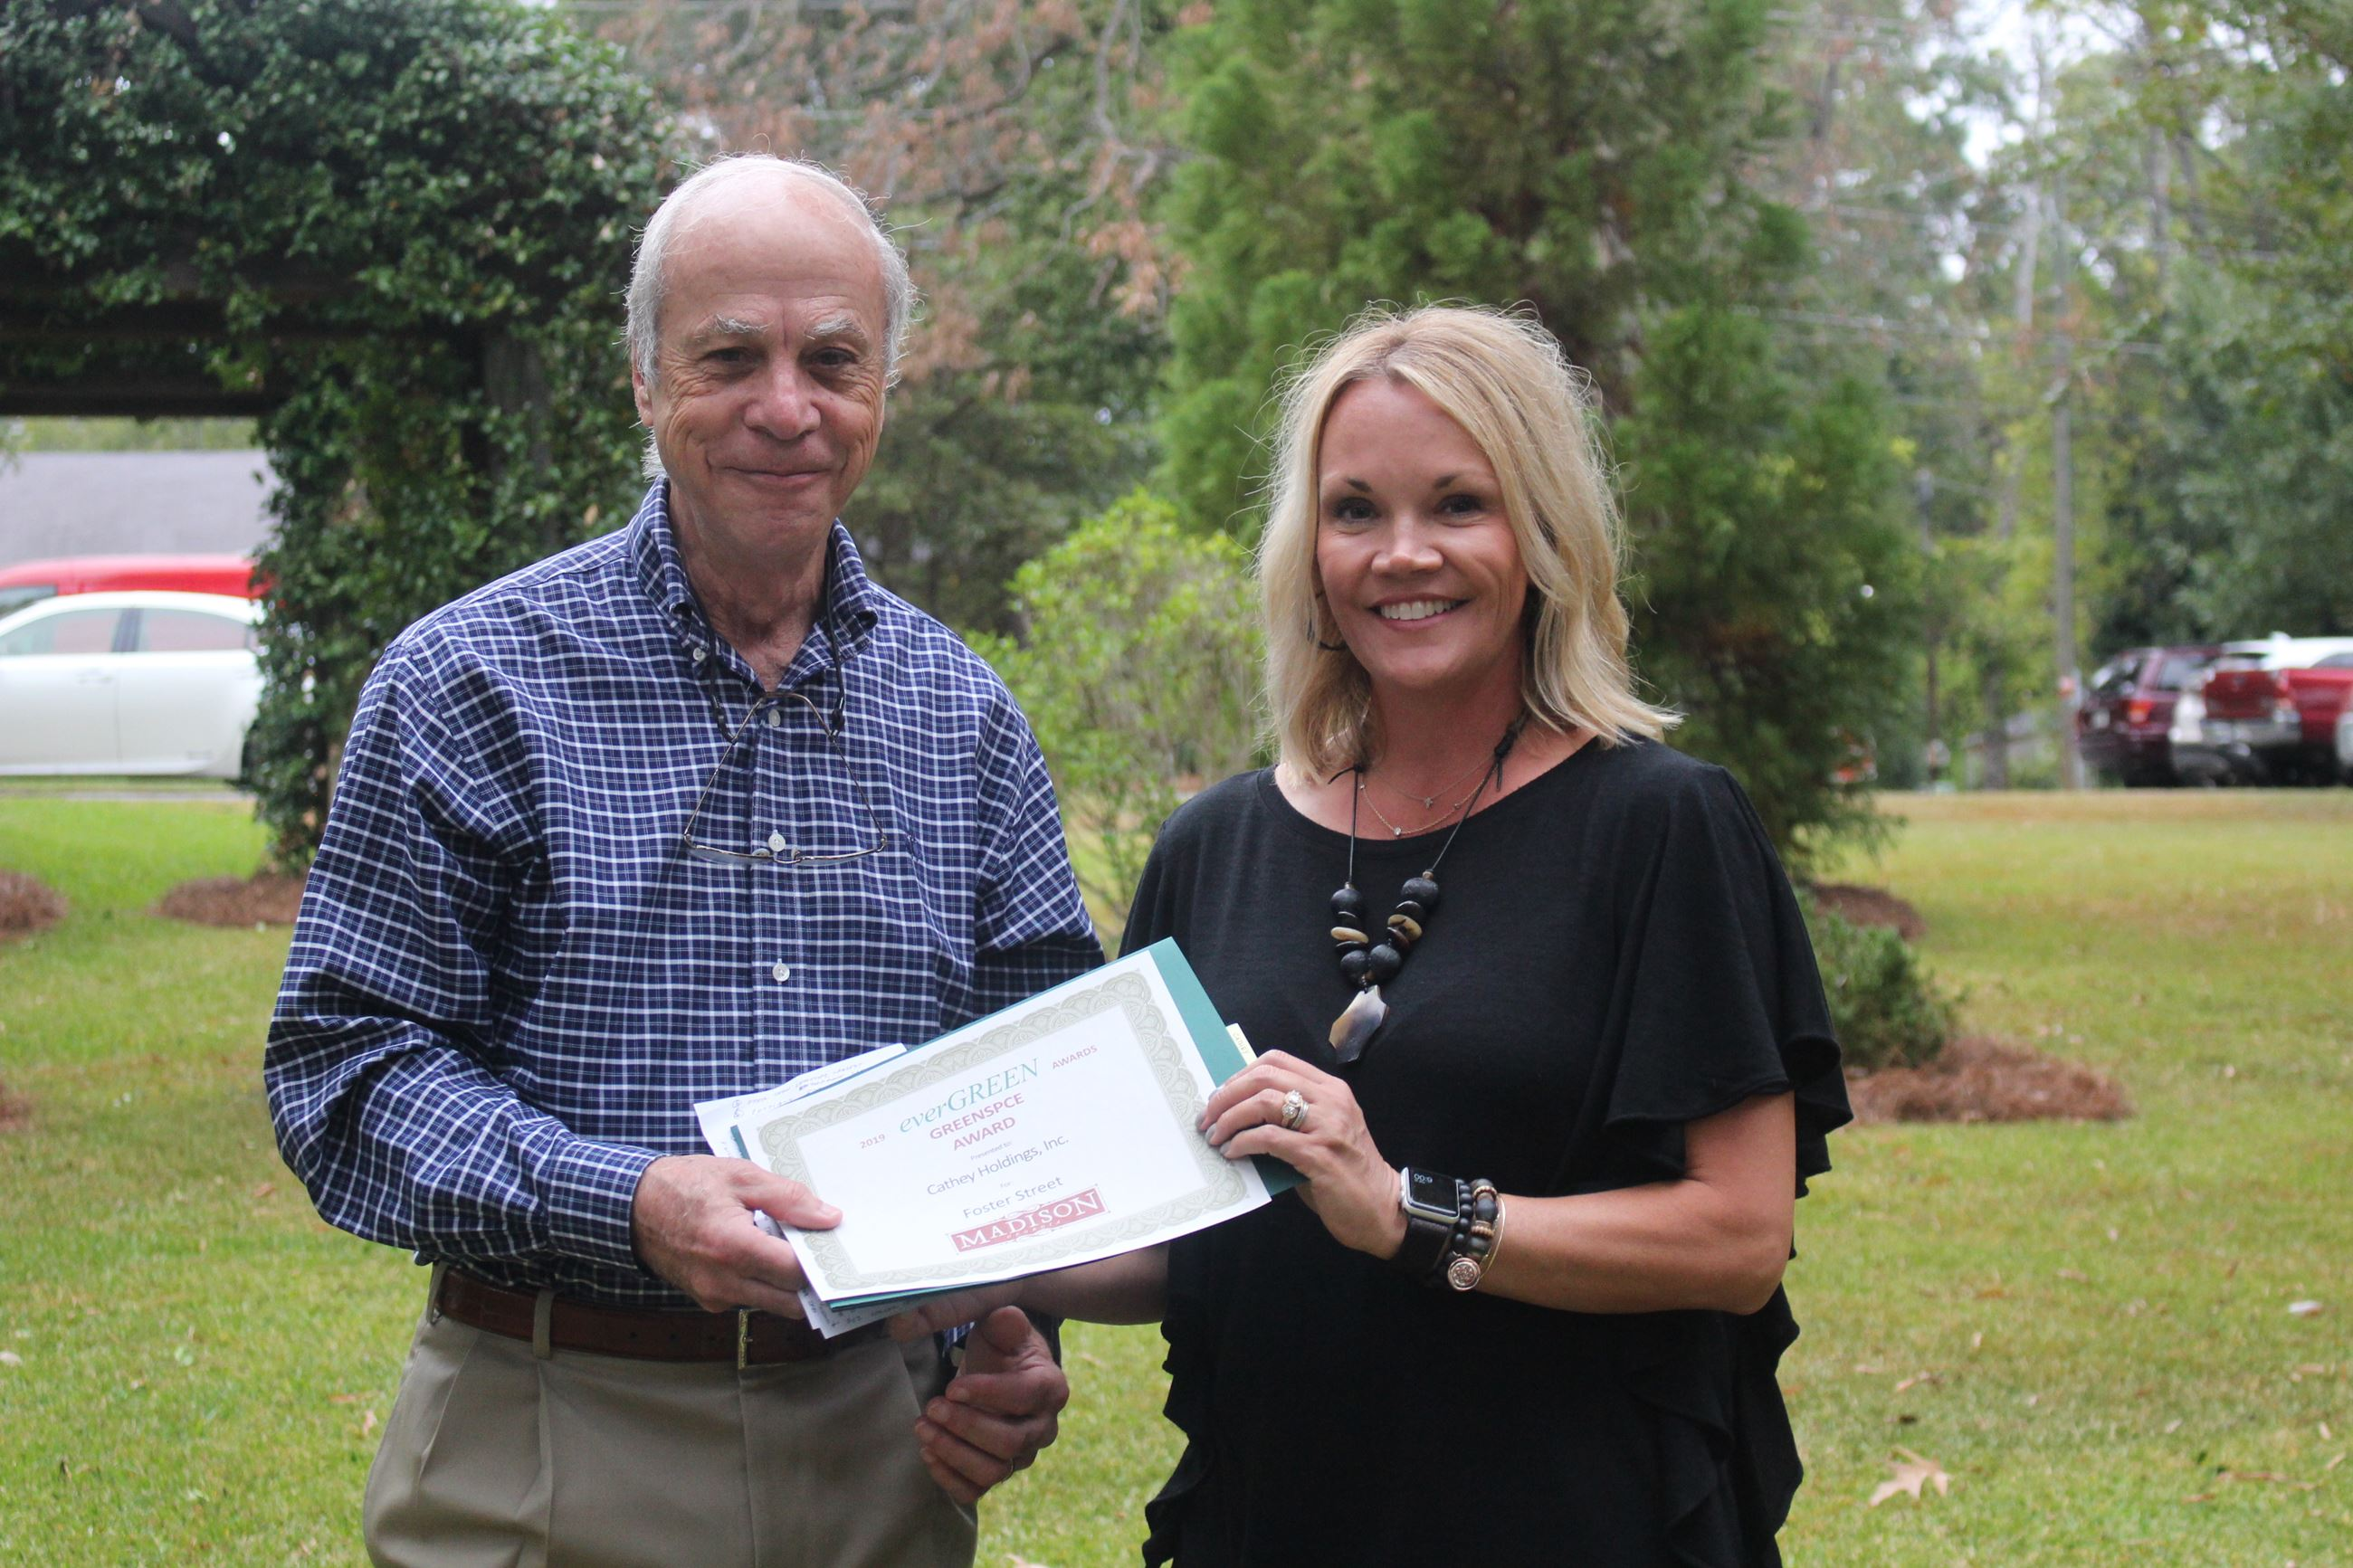 Beth Cathey of Cathey Holdings, Inc. receiving the Greenspace Award from David Land